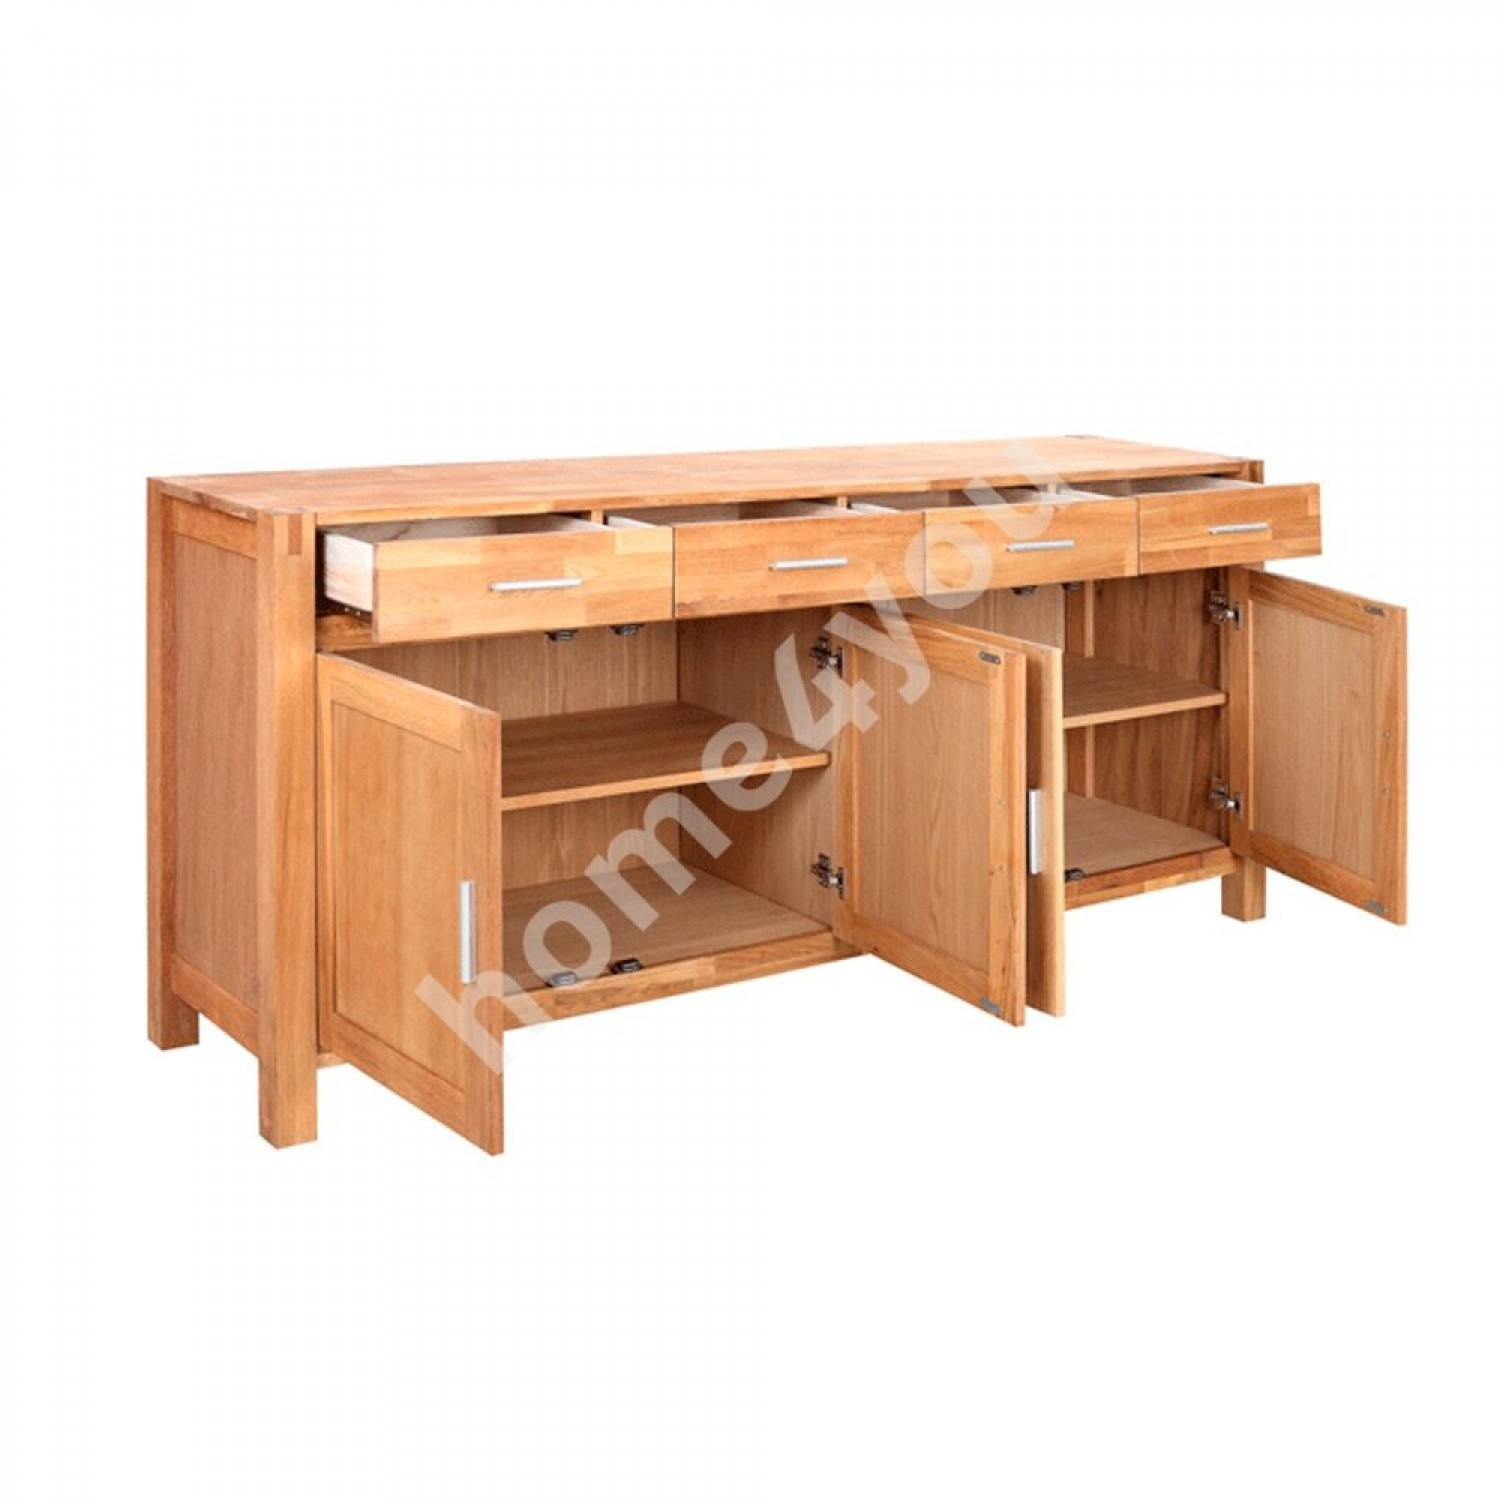 Sideboard Chicago New With 4 Doors And 4 Drawers, 180x44xh86cm, Wood Throughout Most Up To Date Natural Oak Wood 2 Door Sideboards (View 11 of 20)